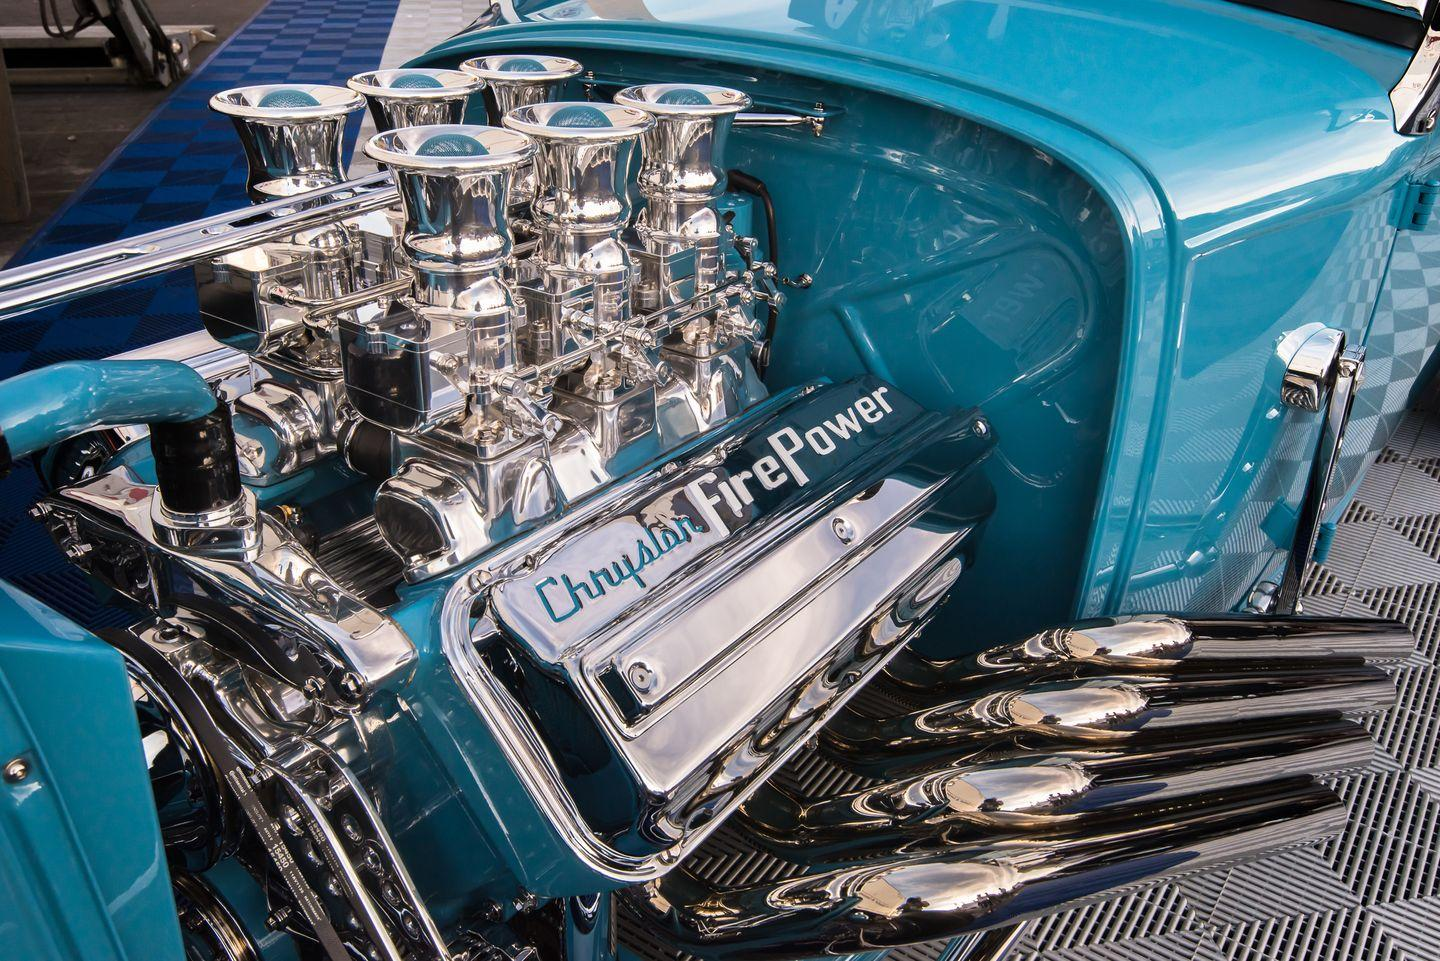 Chrysler Hemi FirePower